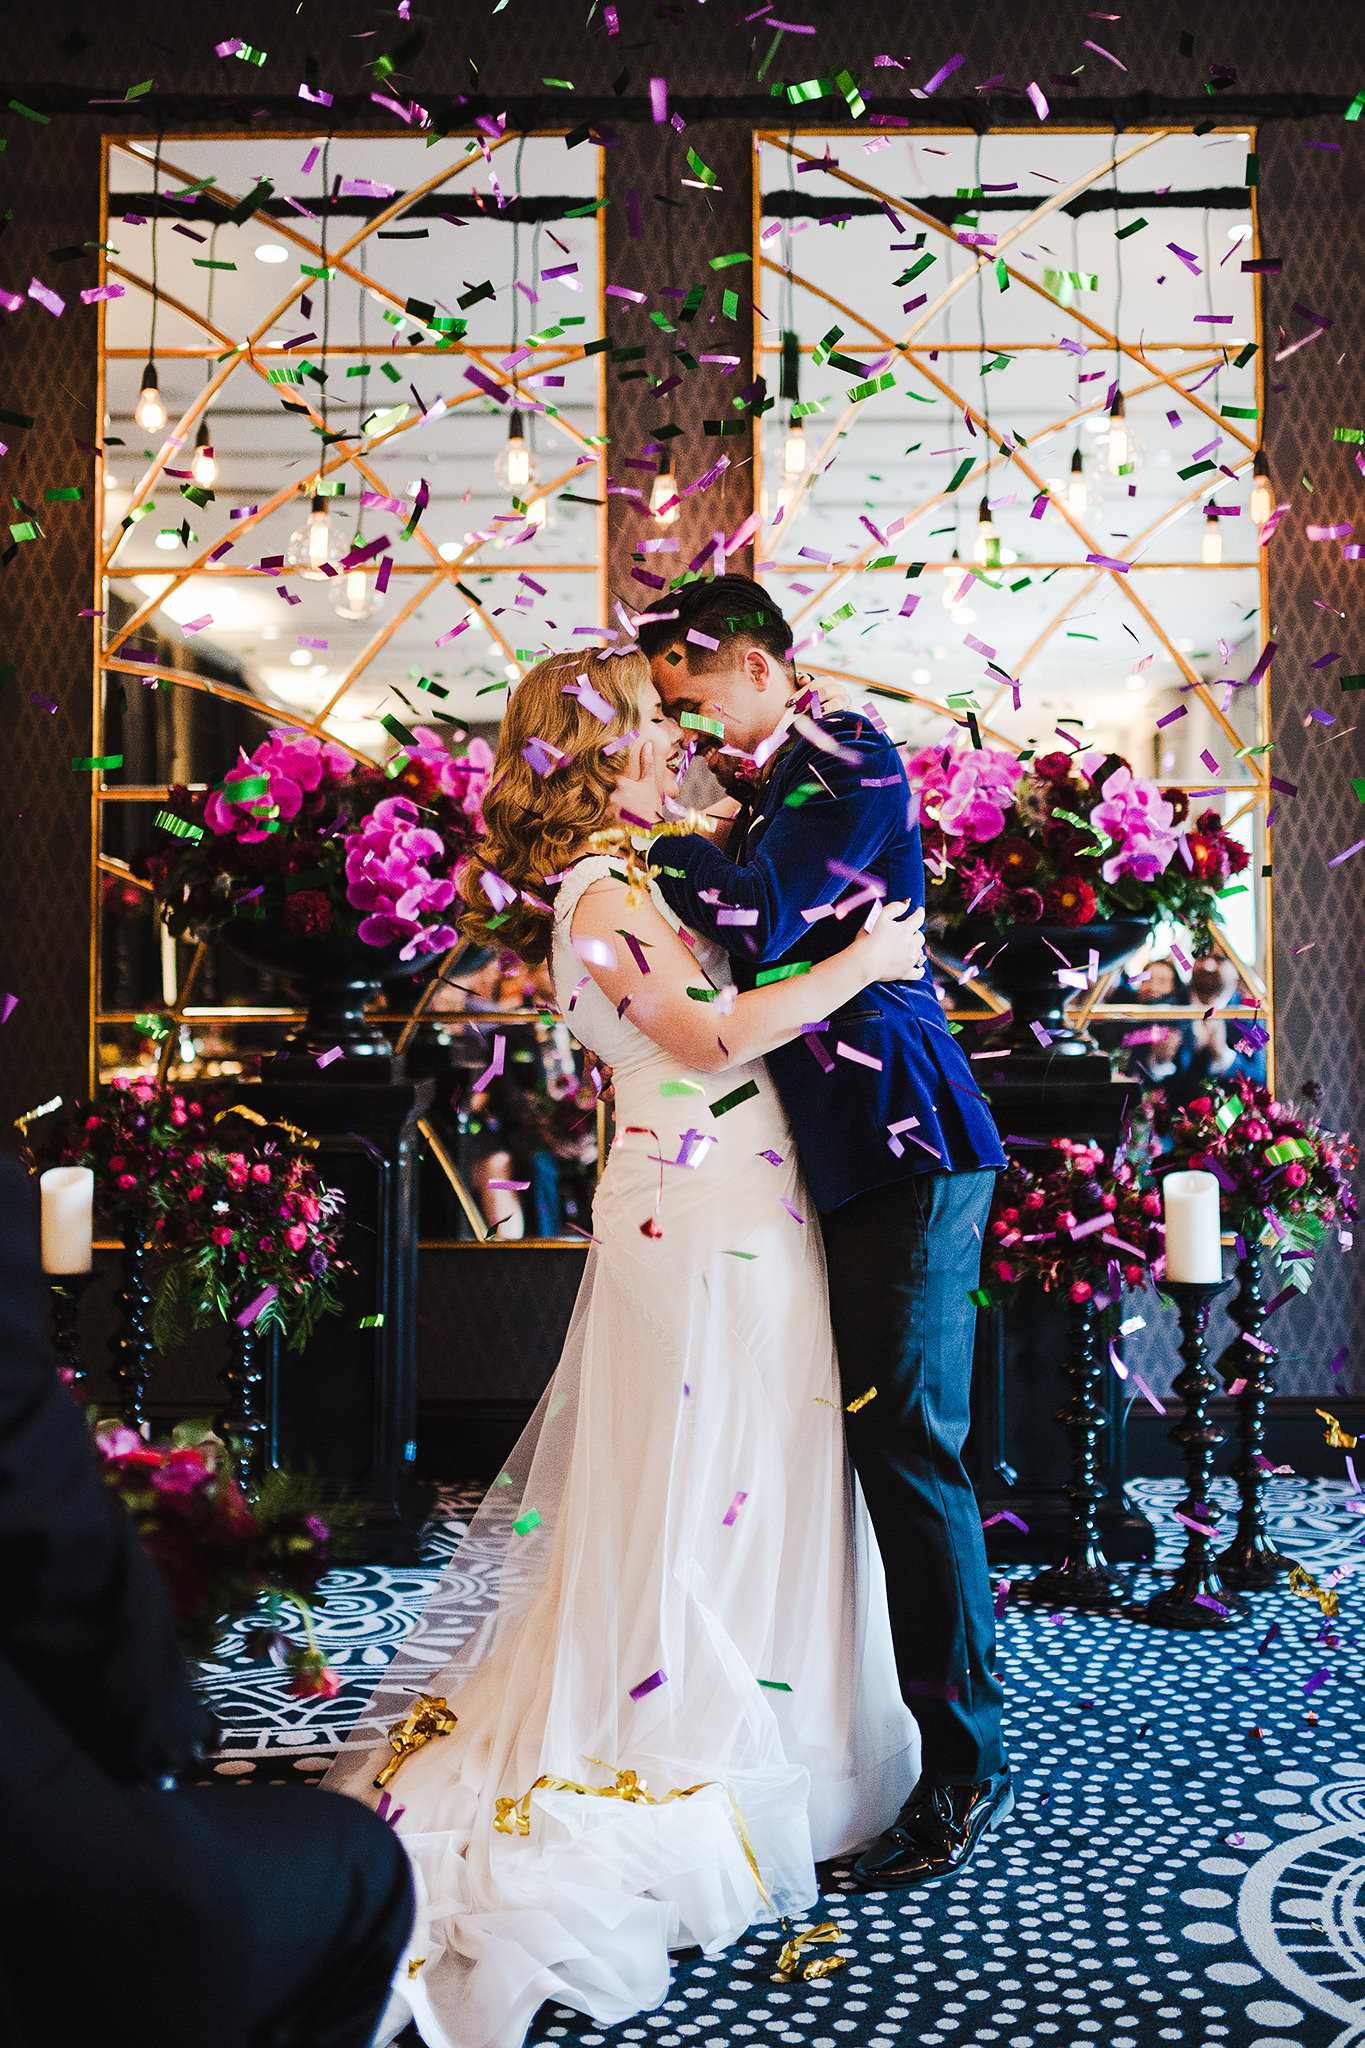 68 confetti kiss at wedding ceremony elegant colourful.JPG